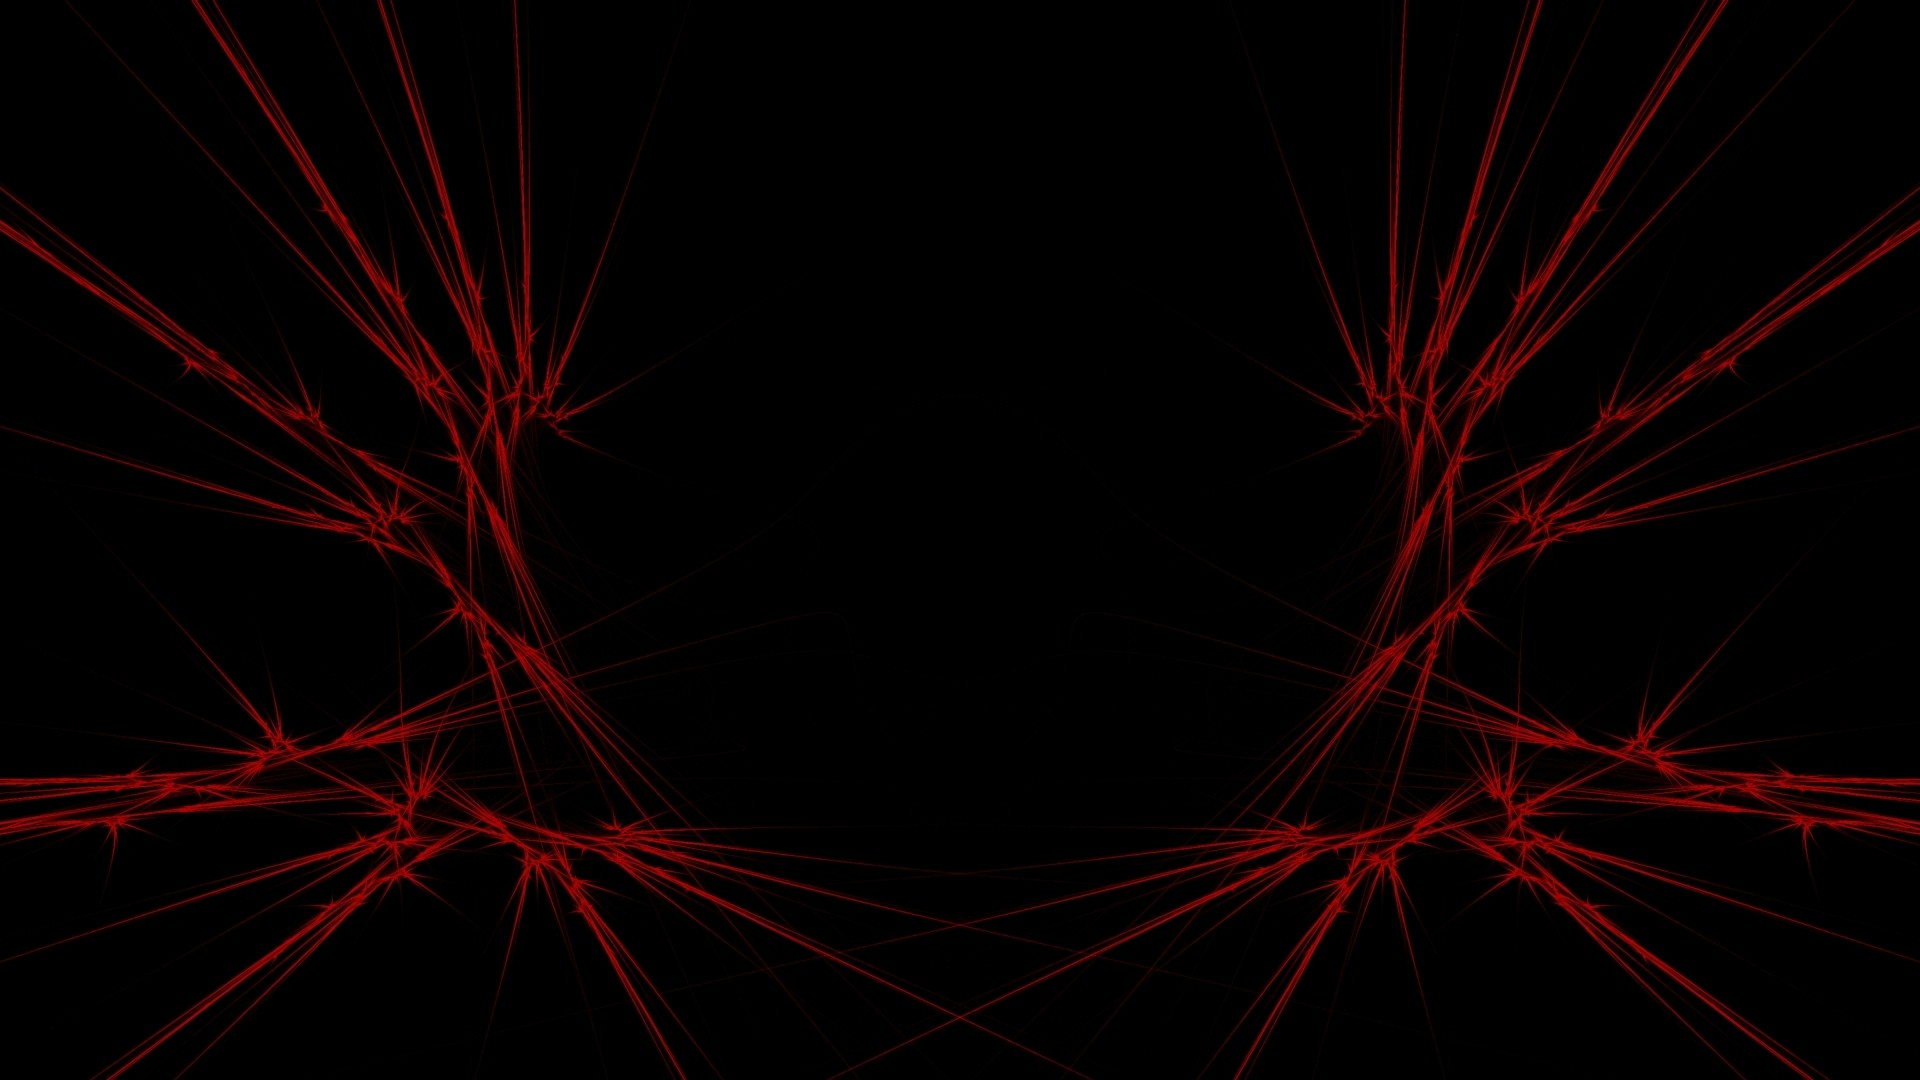 Preview wallpaper red, black, abstract 1920×1080